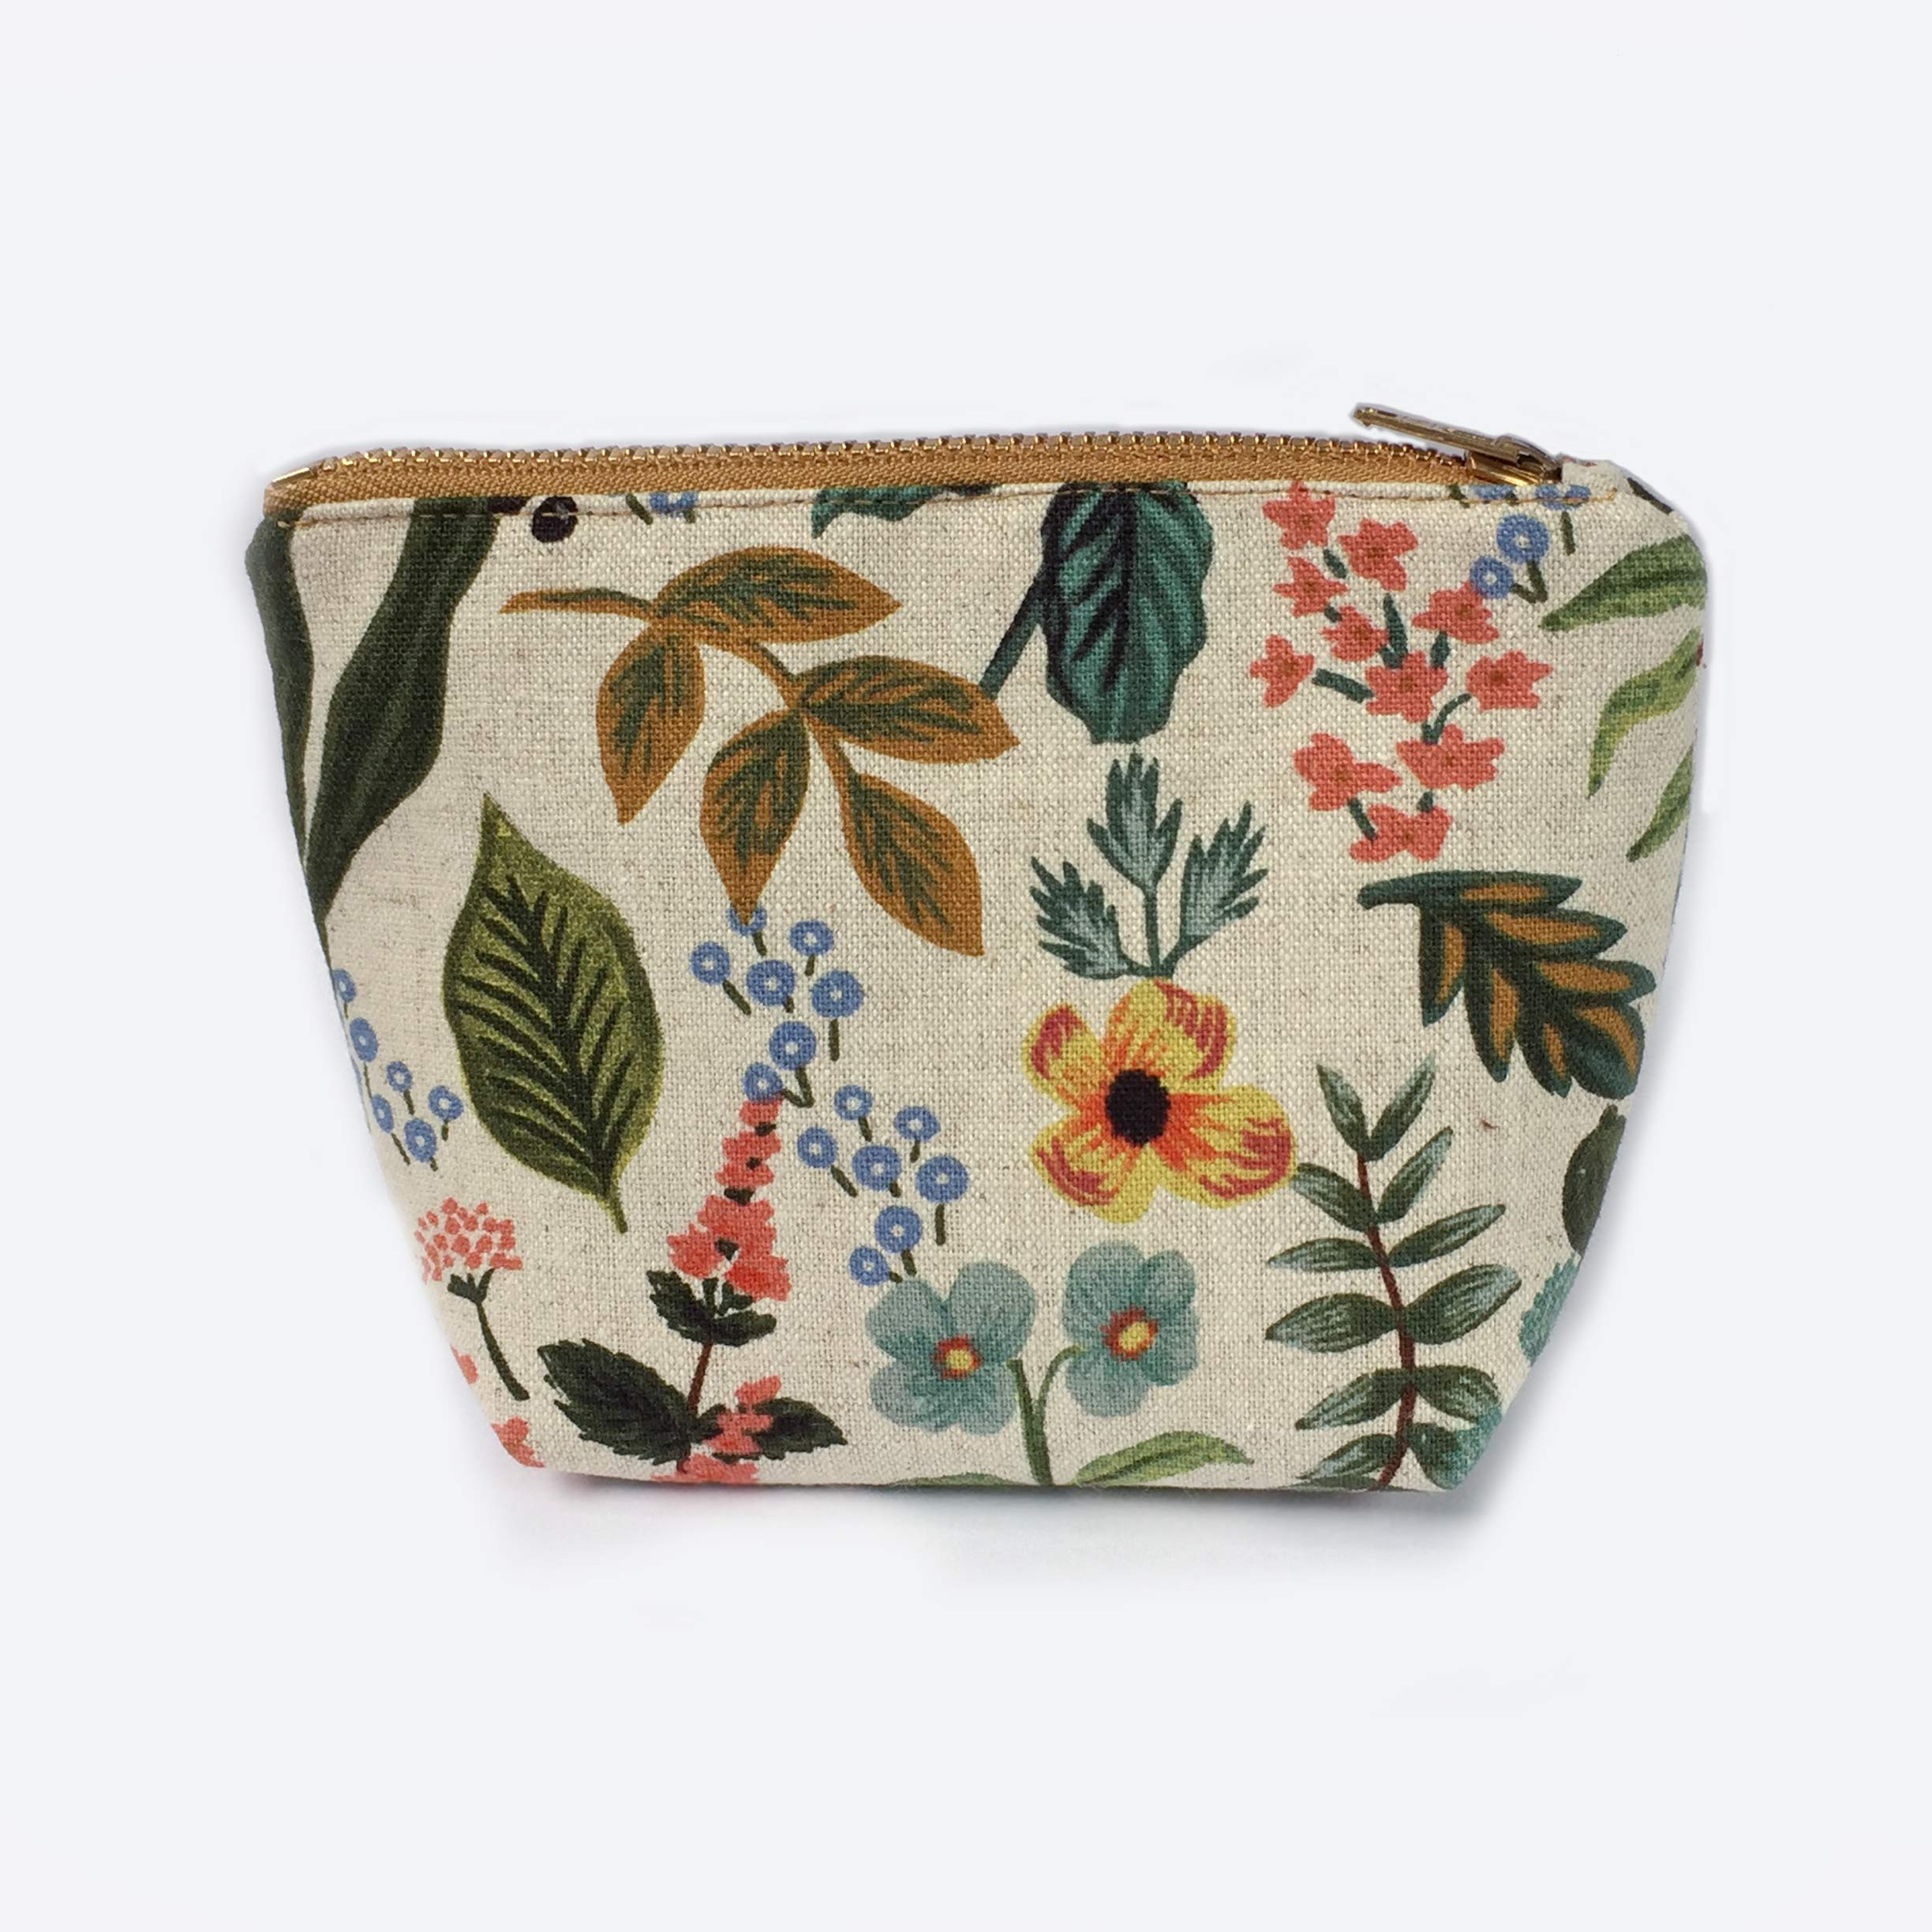 Floral Coin Pouch, Garden Zipper Pouch Canvas Makeup Bag Small, Gifts for Women